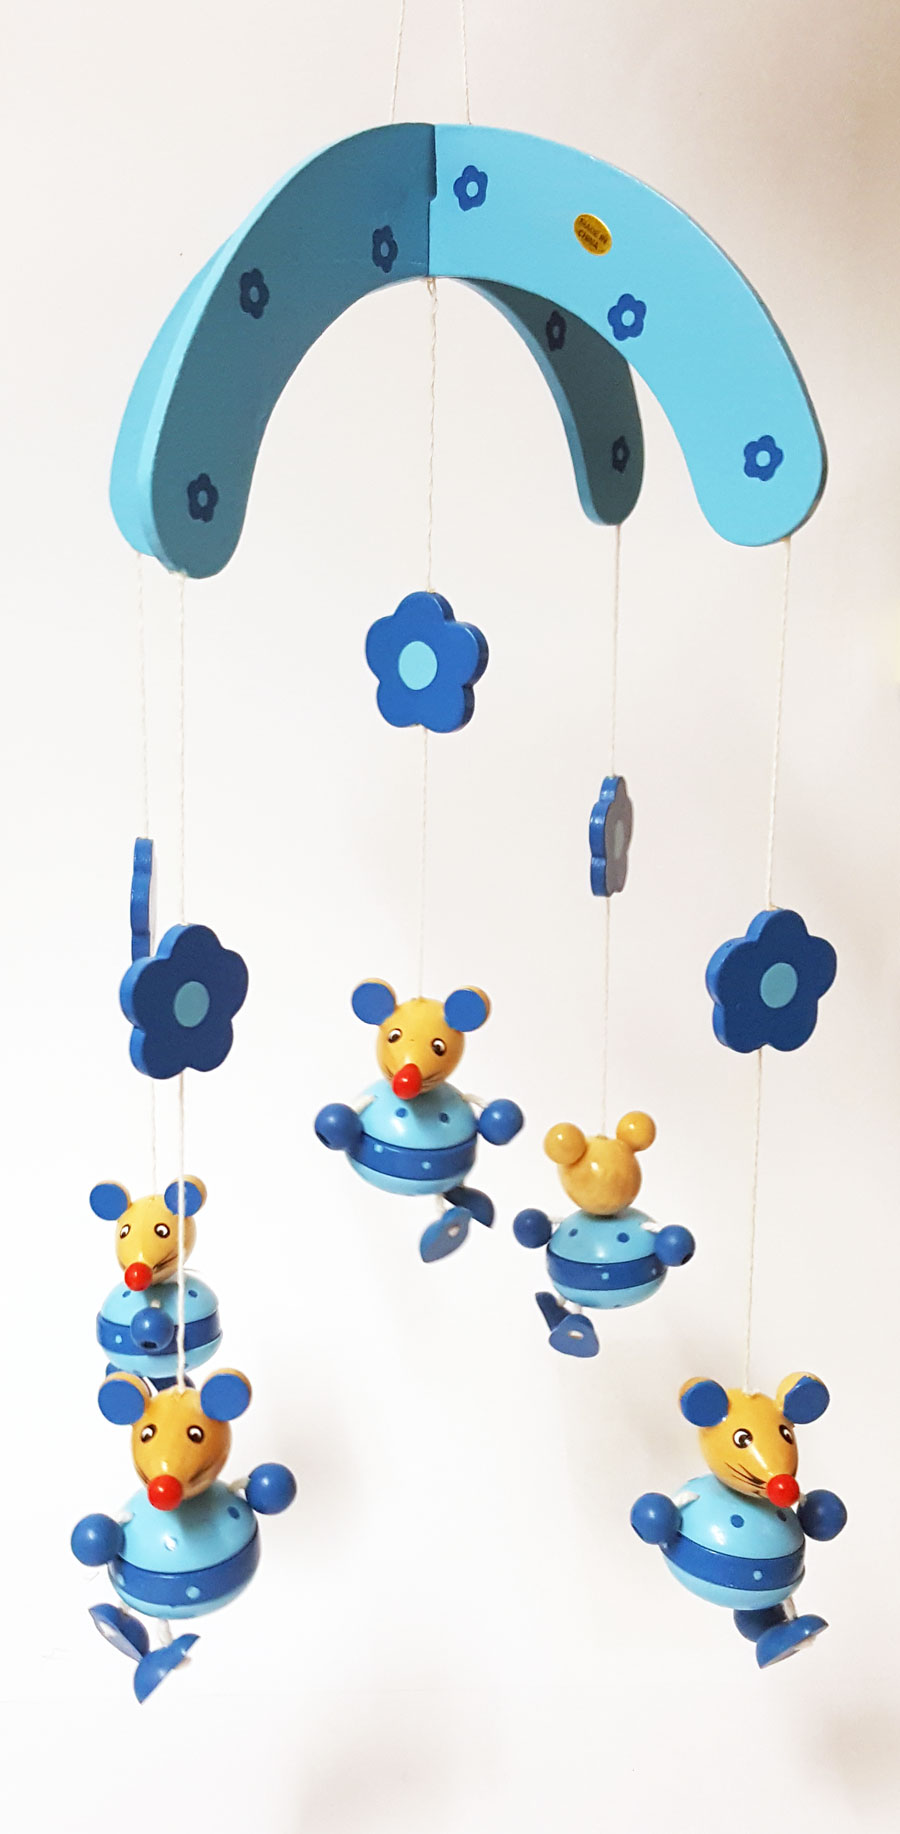 holz mobile maus blau kinderzimmer deko kinder baby holzmobile babyzimmer ebay. Black Bedroom Furniture Sets. Home Design Ideas